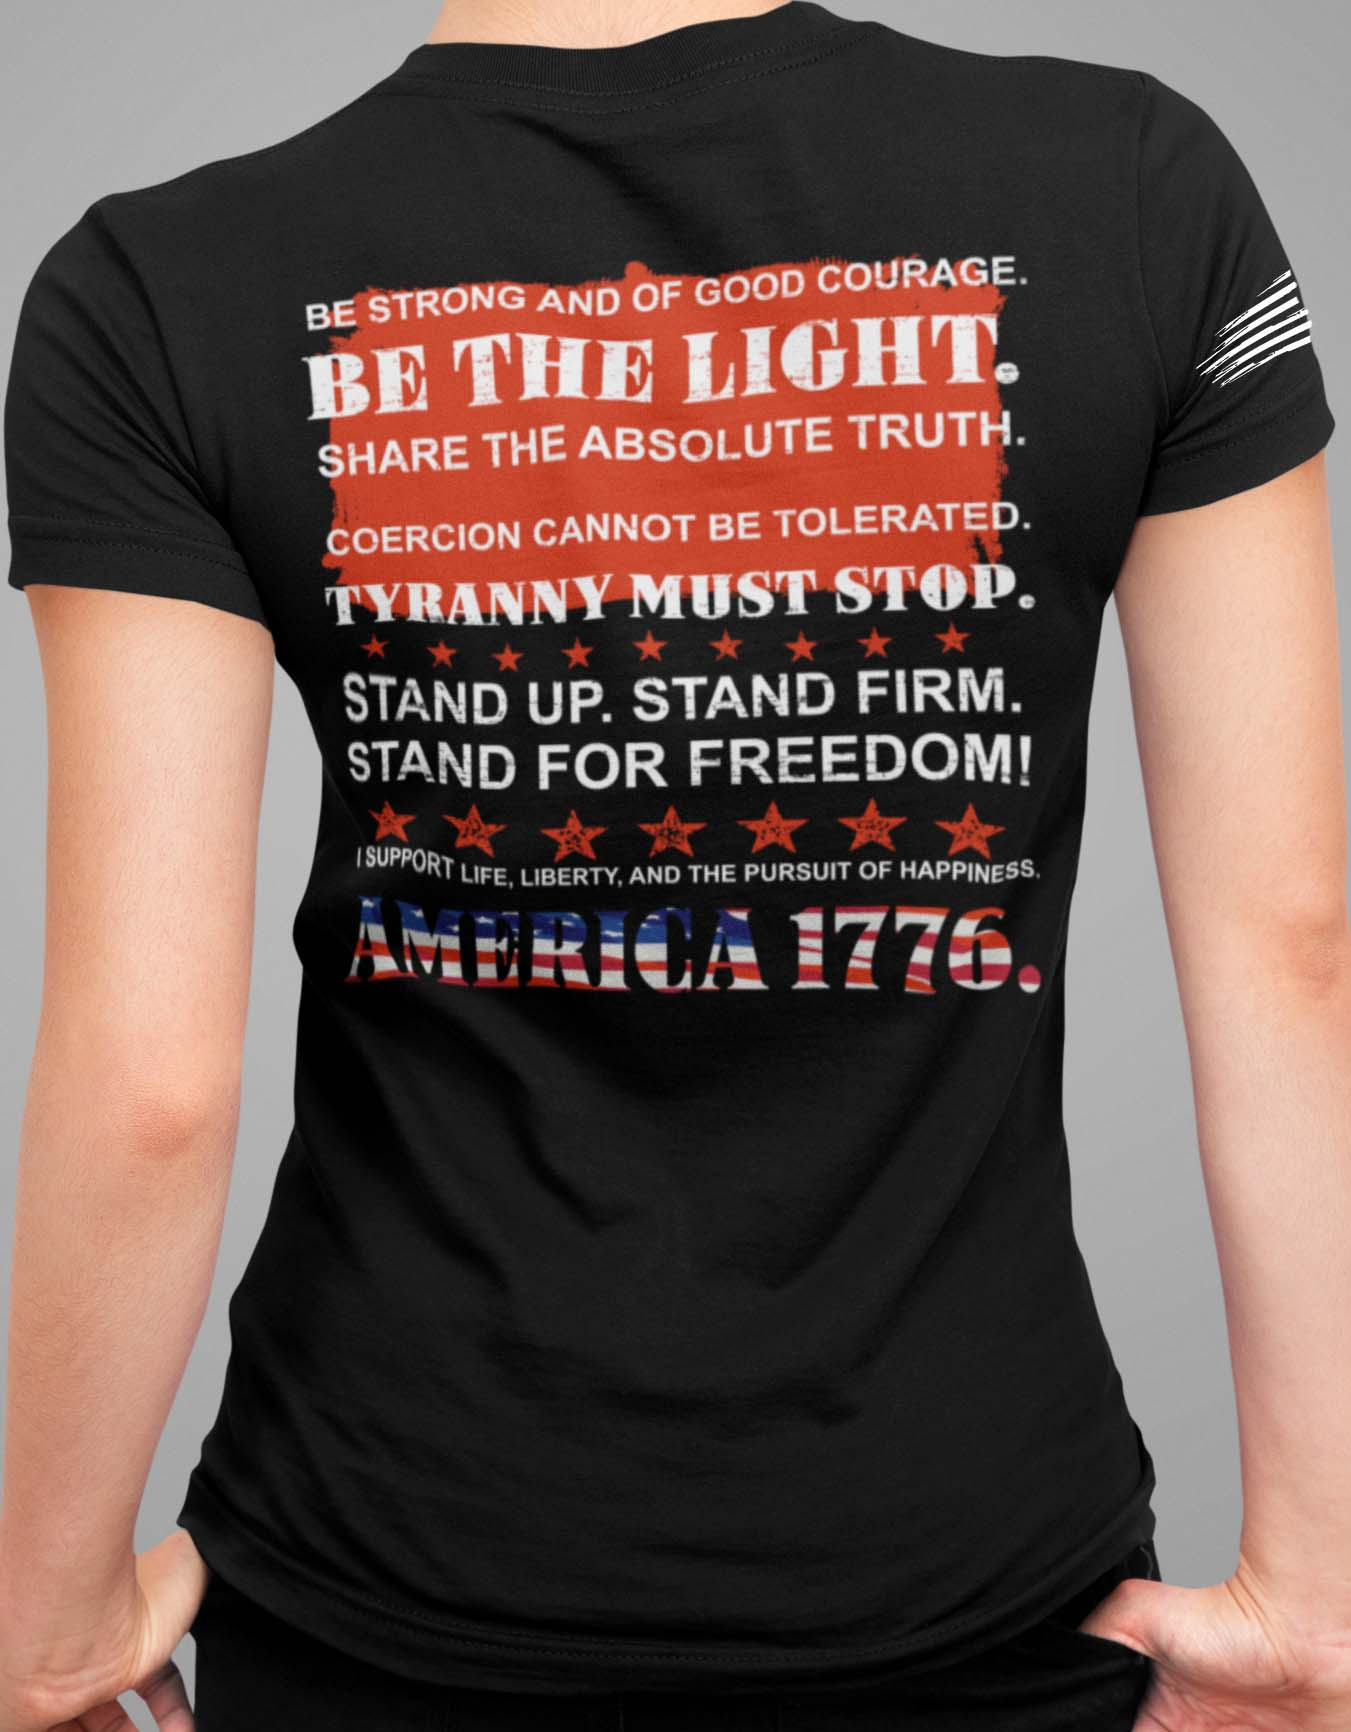 Stand Up Stand Firm on Back of Black V-Neck